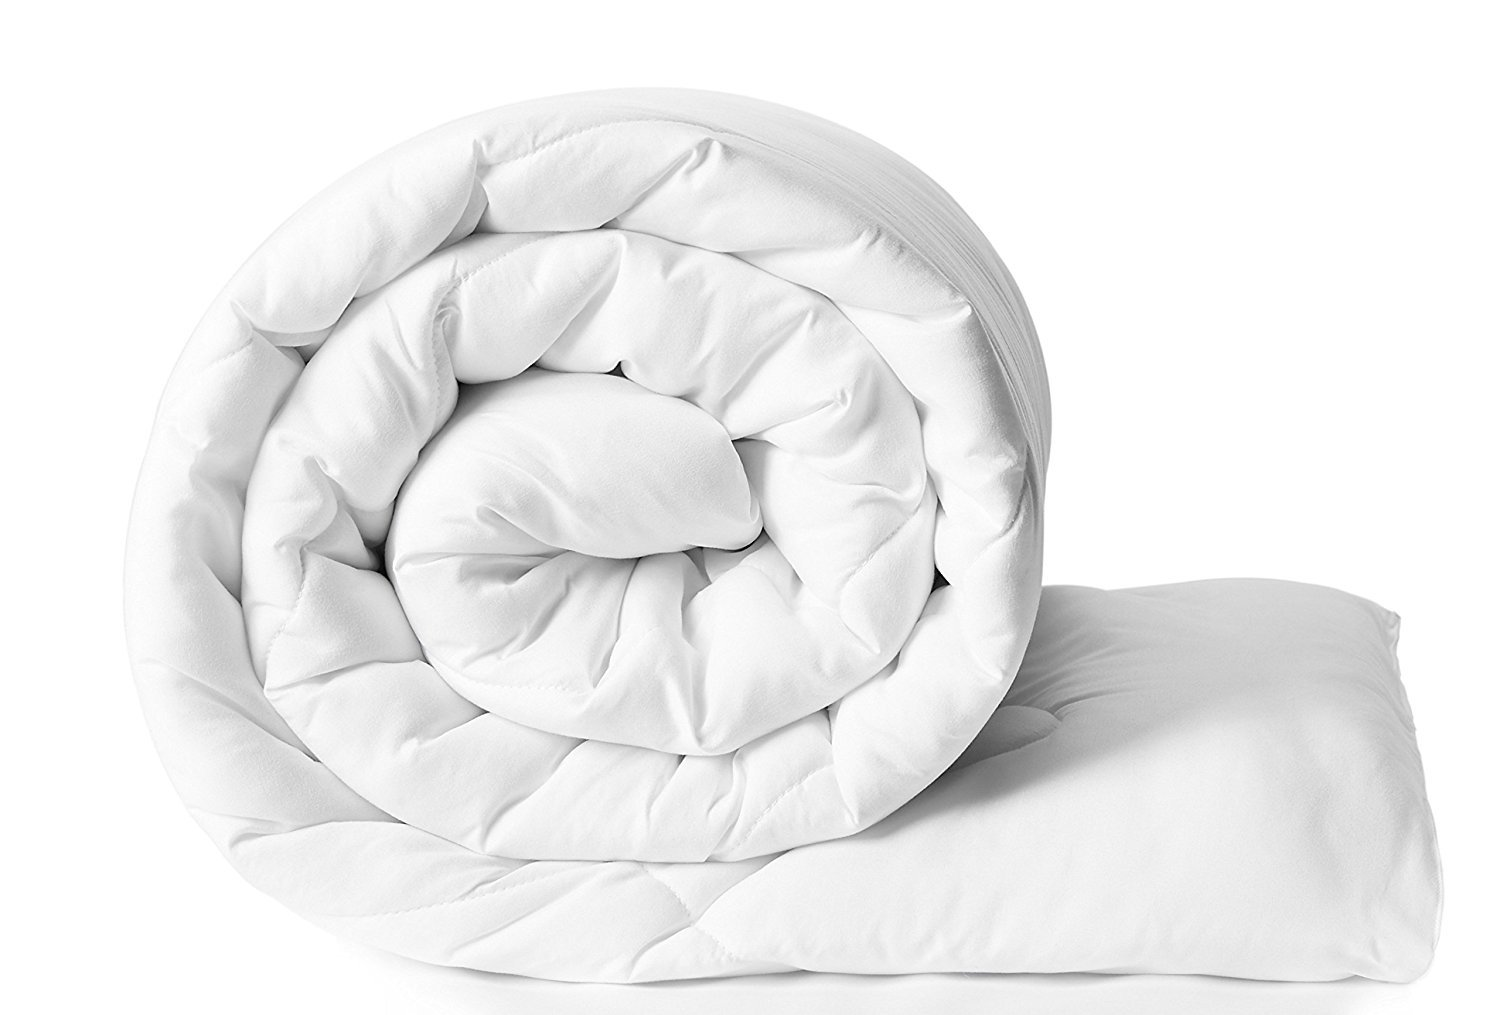 Clasiko Reversible Double Bed King Size Comforter/Duvet for Winters; Color - Pearl White; Fabric - Micro Cotton; 300 GSM; Size - 230x254 Cms; Color Fastness Guarantee (B0827ZJCYF) Amazon Price History, Amazon Price Tracker